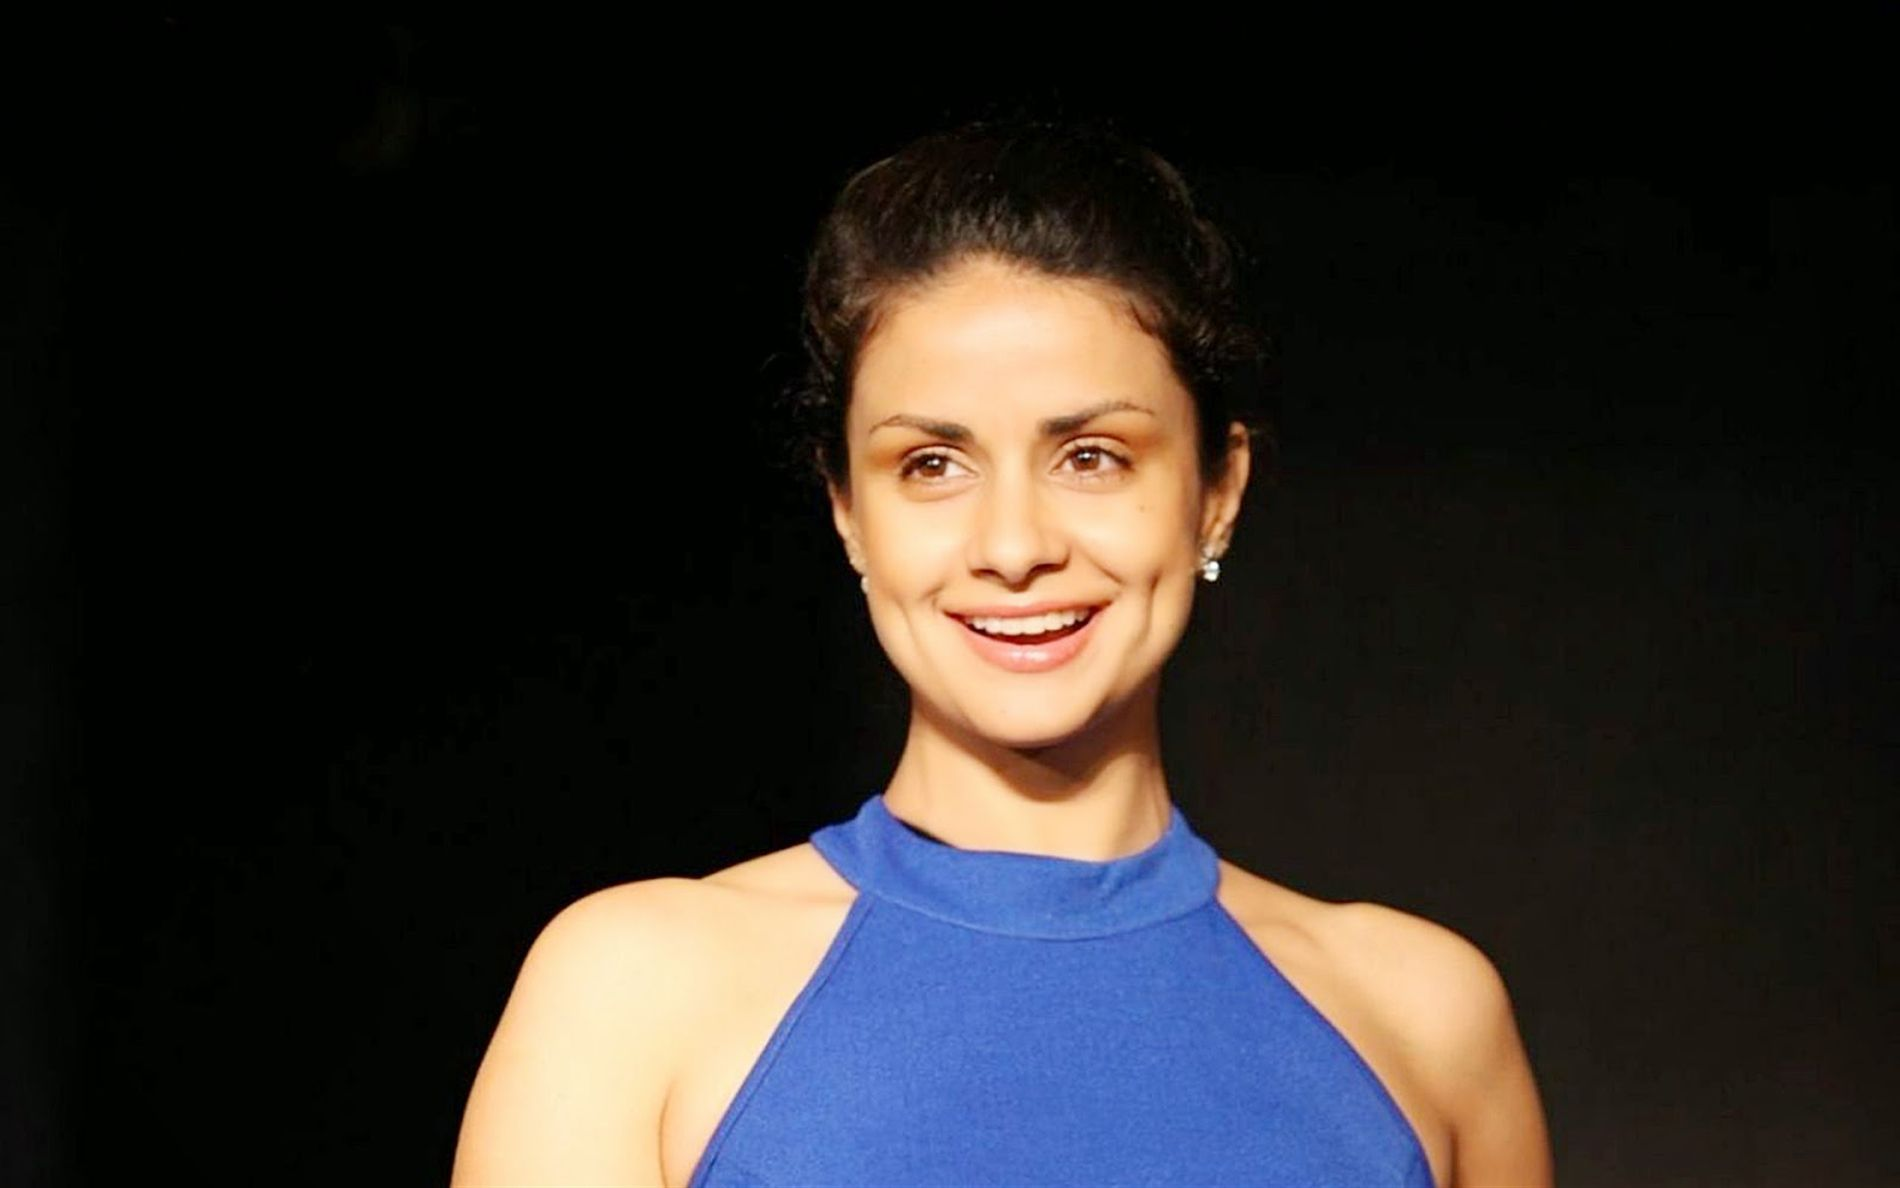 Gul Panag Biography, Biodata, Wiki, Age, Height, Religion, Affairs & More